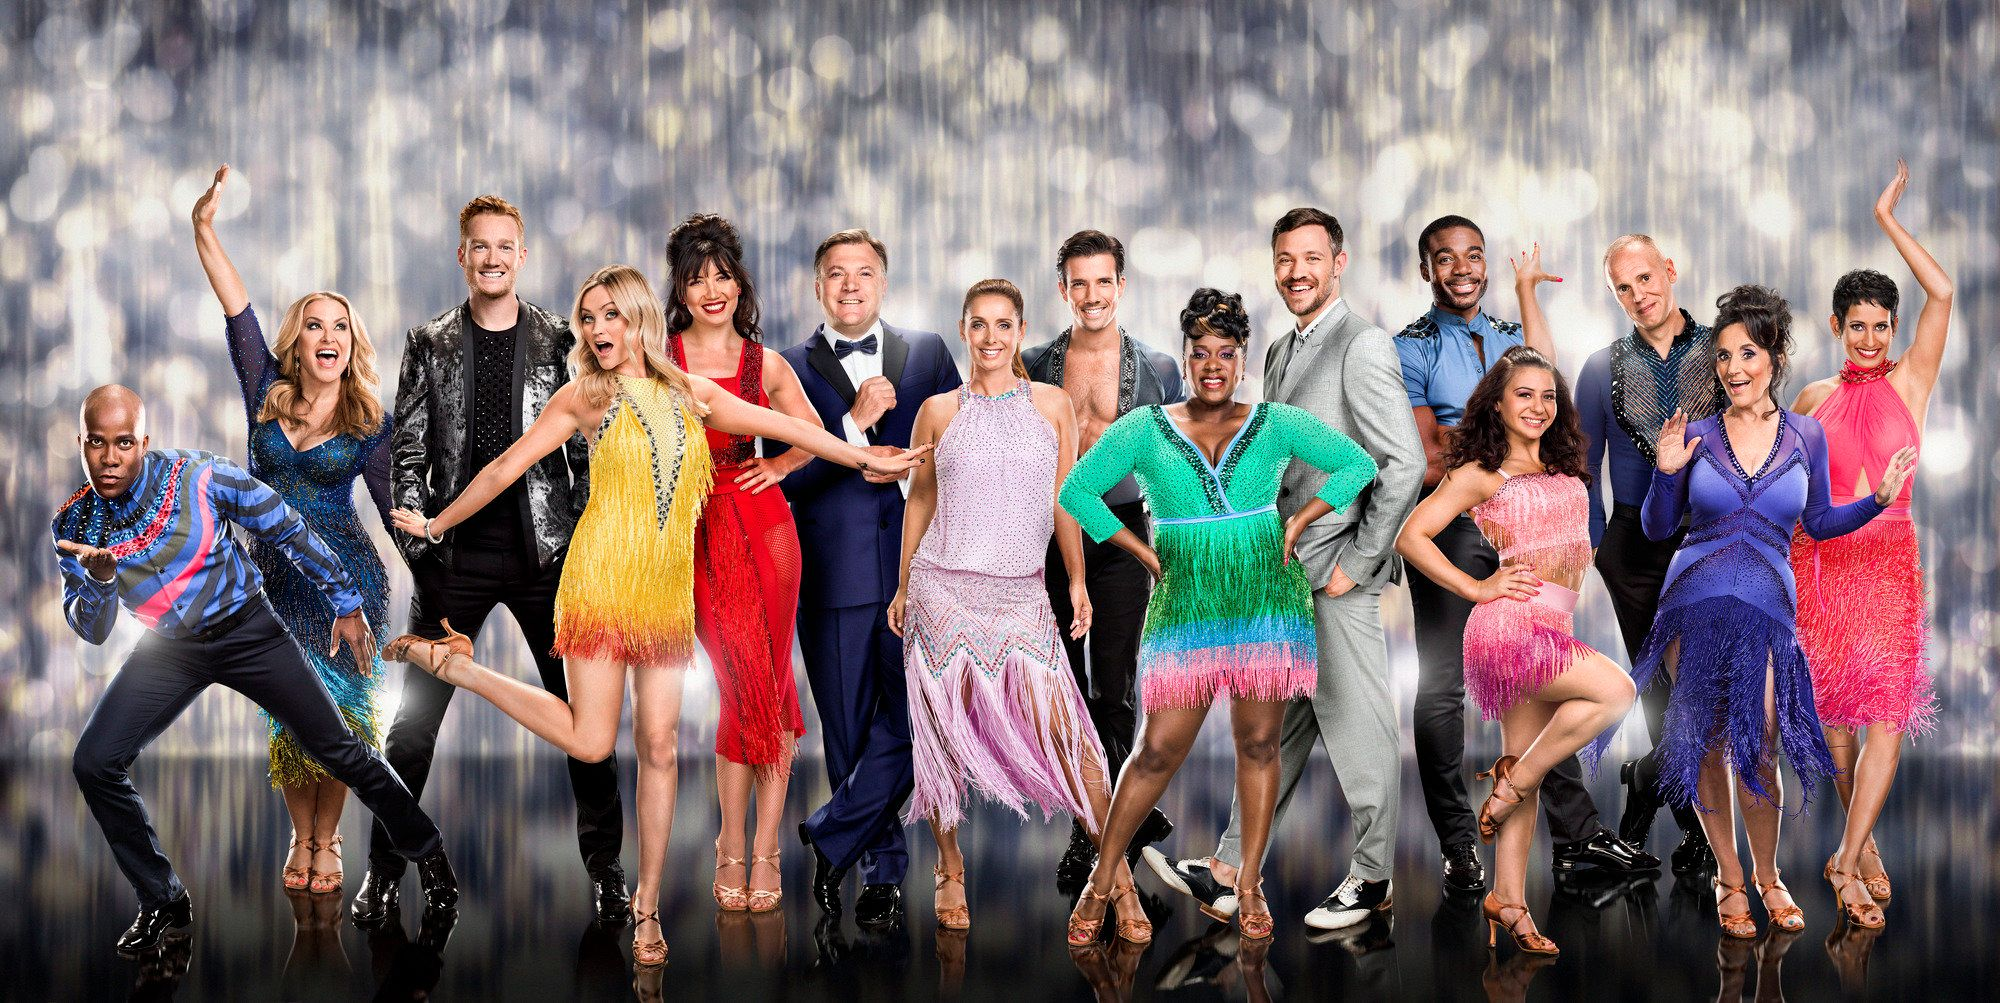 Here's What The 'Strictly' Stars Will Be Performing This